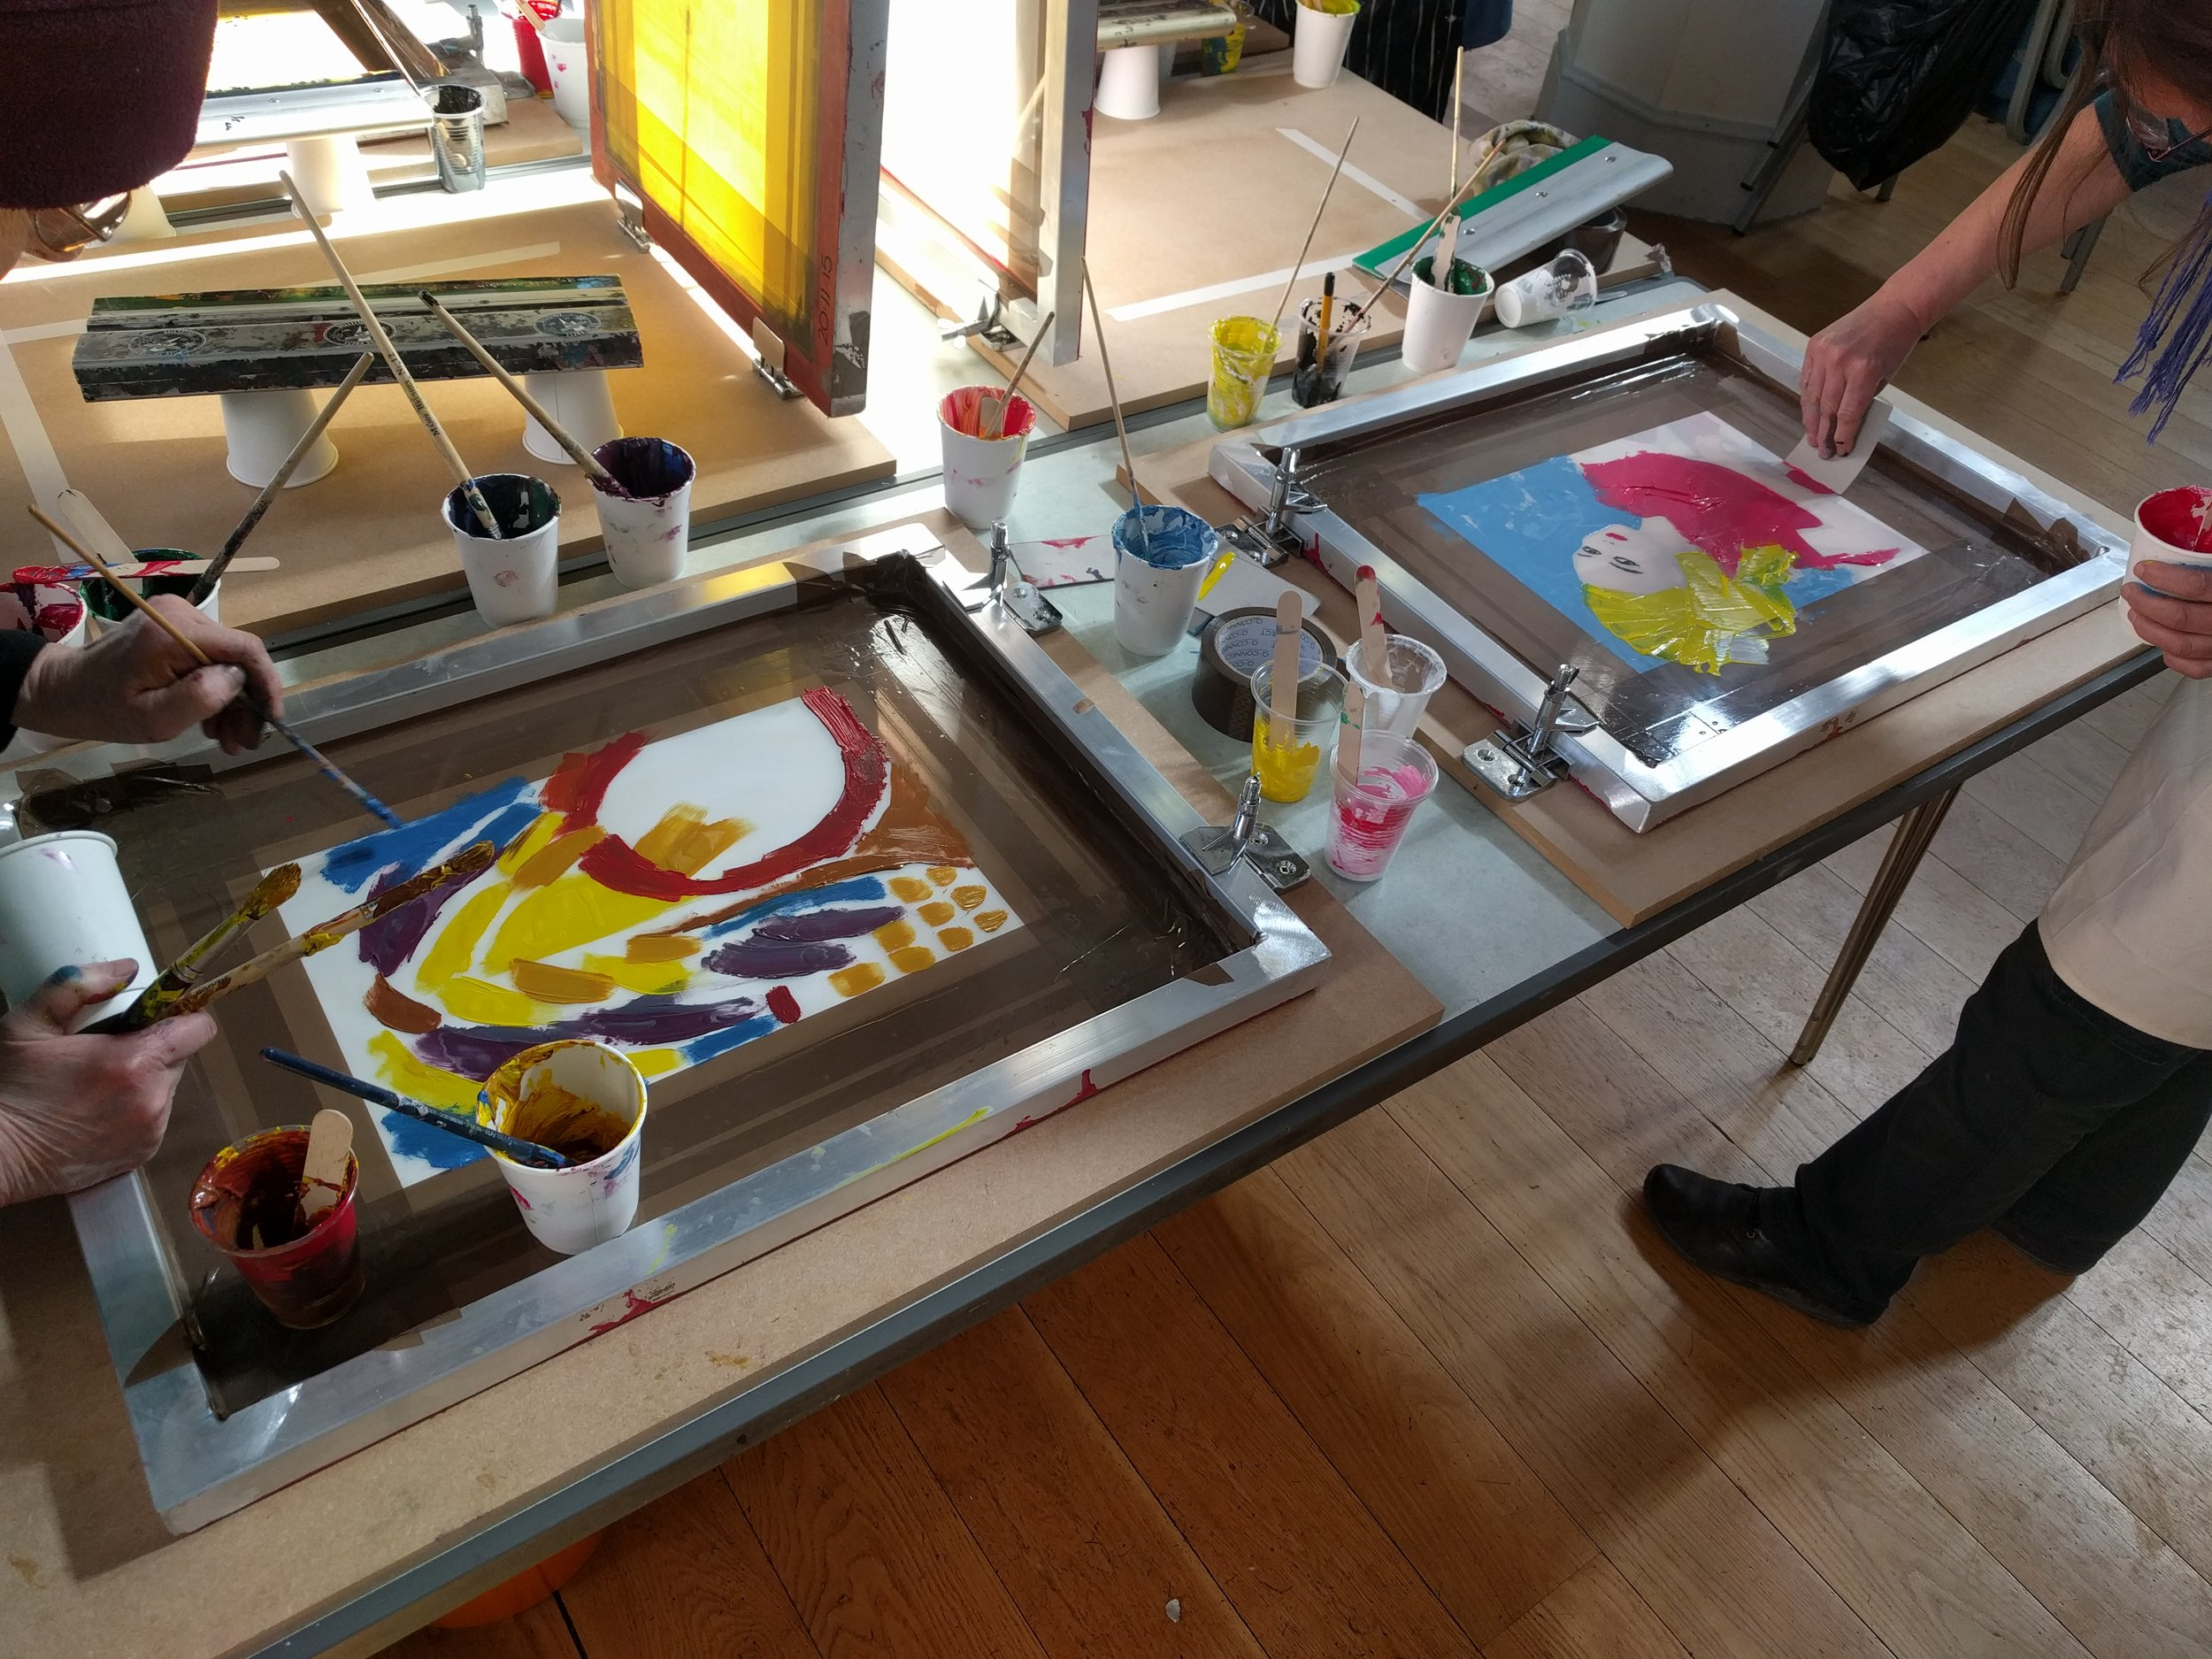 SATURDAY 21ST SEPTEMBER10.30 – 12.30PM - Experimental screen printing workshop with Off the press collective. This workshop is an introduction into the process or a refresher for those who would like to revisit it. We shall introduce the screen printing process and demonstrate a few printing methods. Under our guidance you will then have the opportunity to work with stencils, experiment with colours and blends. All materials are provided. You just need yourself and an apron. We always suggest bringing some reference material or having an idea of what you would like to print so you can get cracking.Off the Press are a printmaking collective based in Bury St Edmunds.Size : 10 participantsWorkshop Leaders: Sam, James and Anna.